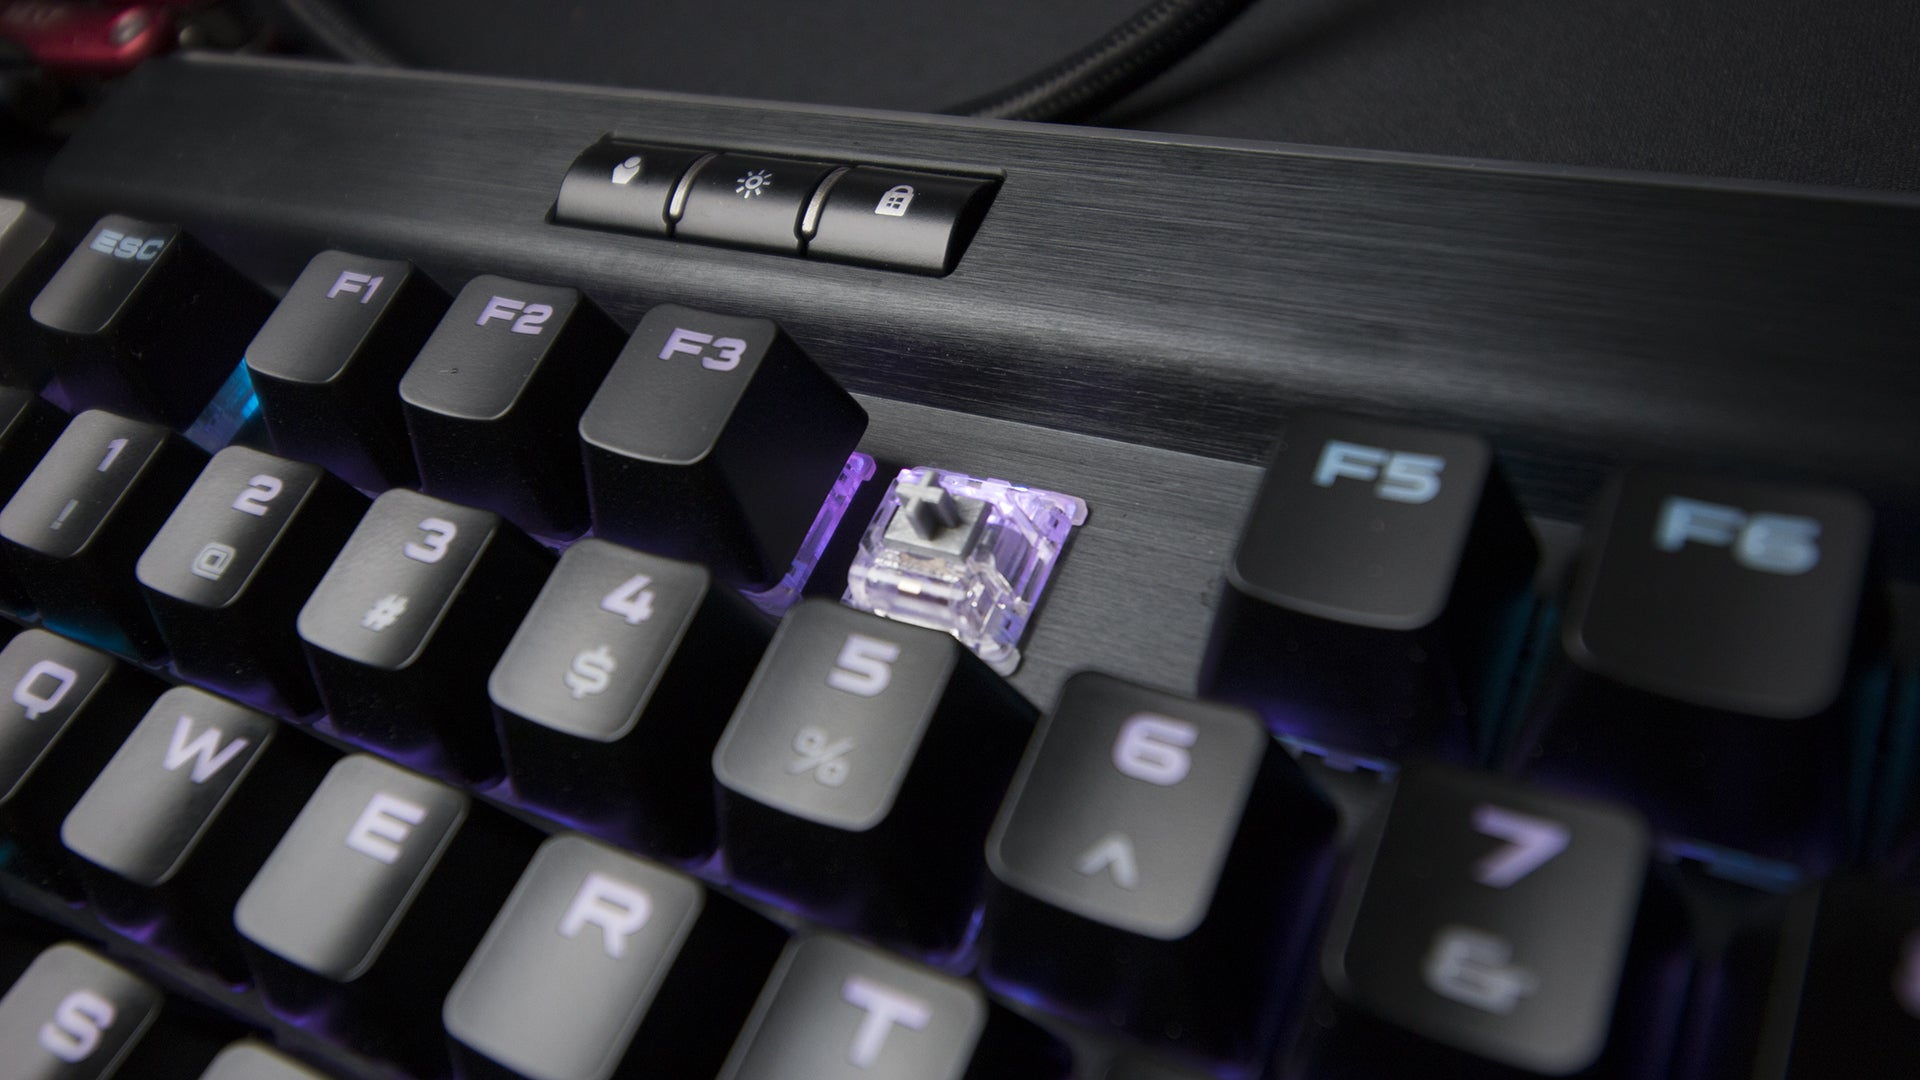 Corsair Gaming K95 Rgb Platinum Review A Very Keyboard Mechanical Cherry Mx Speed The Comes In Two Colours Black And Gunmetal It Also Features Choice Of Switch Types Tactile Brown Or Silver